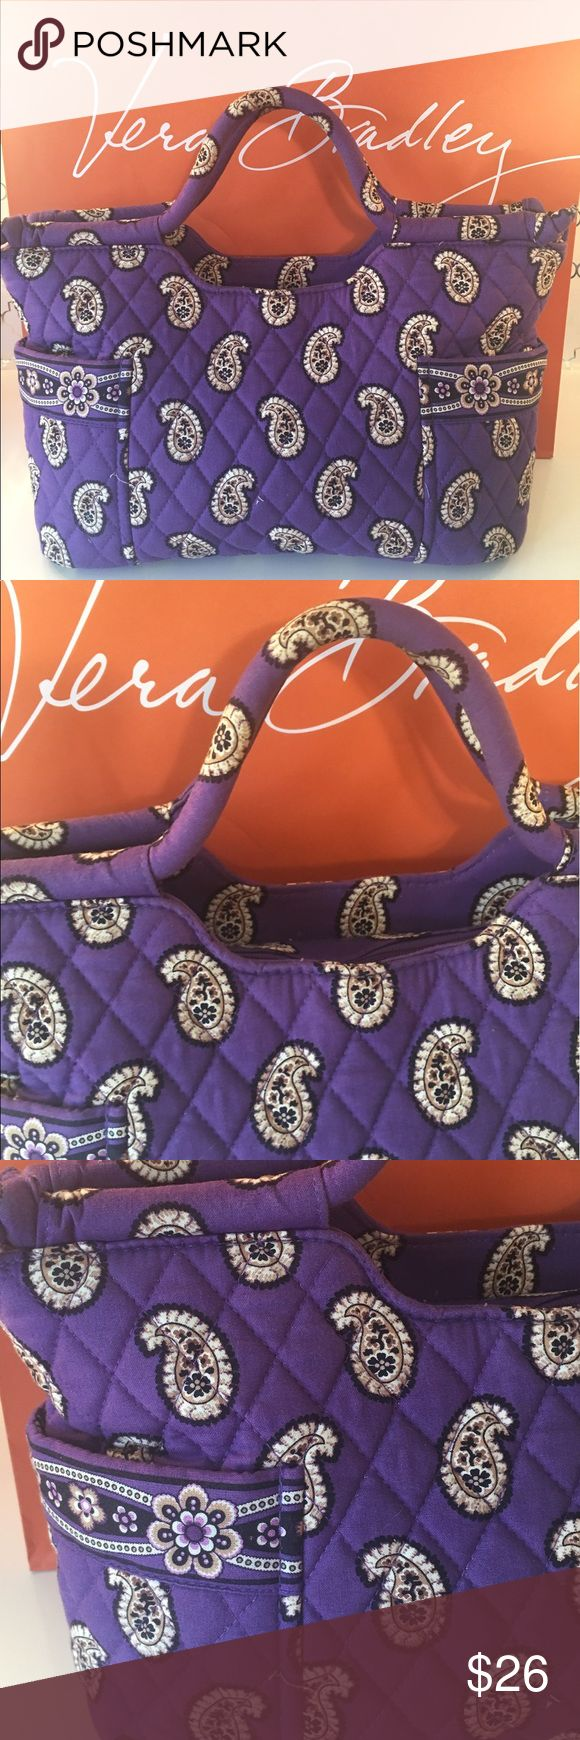 ⭐️VERA BRADLEY ROOMY BAG 💯AUTHENTIC. VERA BRADLEY LOVELY ROOMY BAG 100% AUTHENTIC. WHAT A LOVELY BAG IN PURPLE! STUNNING AND STYLISH PERFECT FOR ANY OCCASION! THIS BAG HAS TWO GREAT OUTSIDE POCKETS! RHE ROOMY MAIN COMPARTMENT HAS FOUR GREAT WALL POCKETS. THE BAG ALSO HAS A ZIP TOP CLOSURE TO KEEP YOUR ITEMS SAFE. SO PRETTY. THE BAG MEASURES 14 INCHES WIDE BY 9 INCHES TALL! Vera Bradley Bags